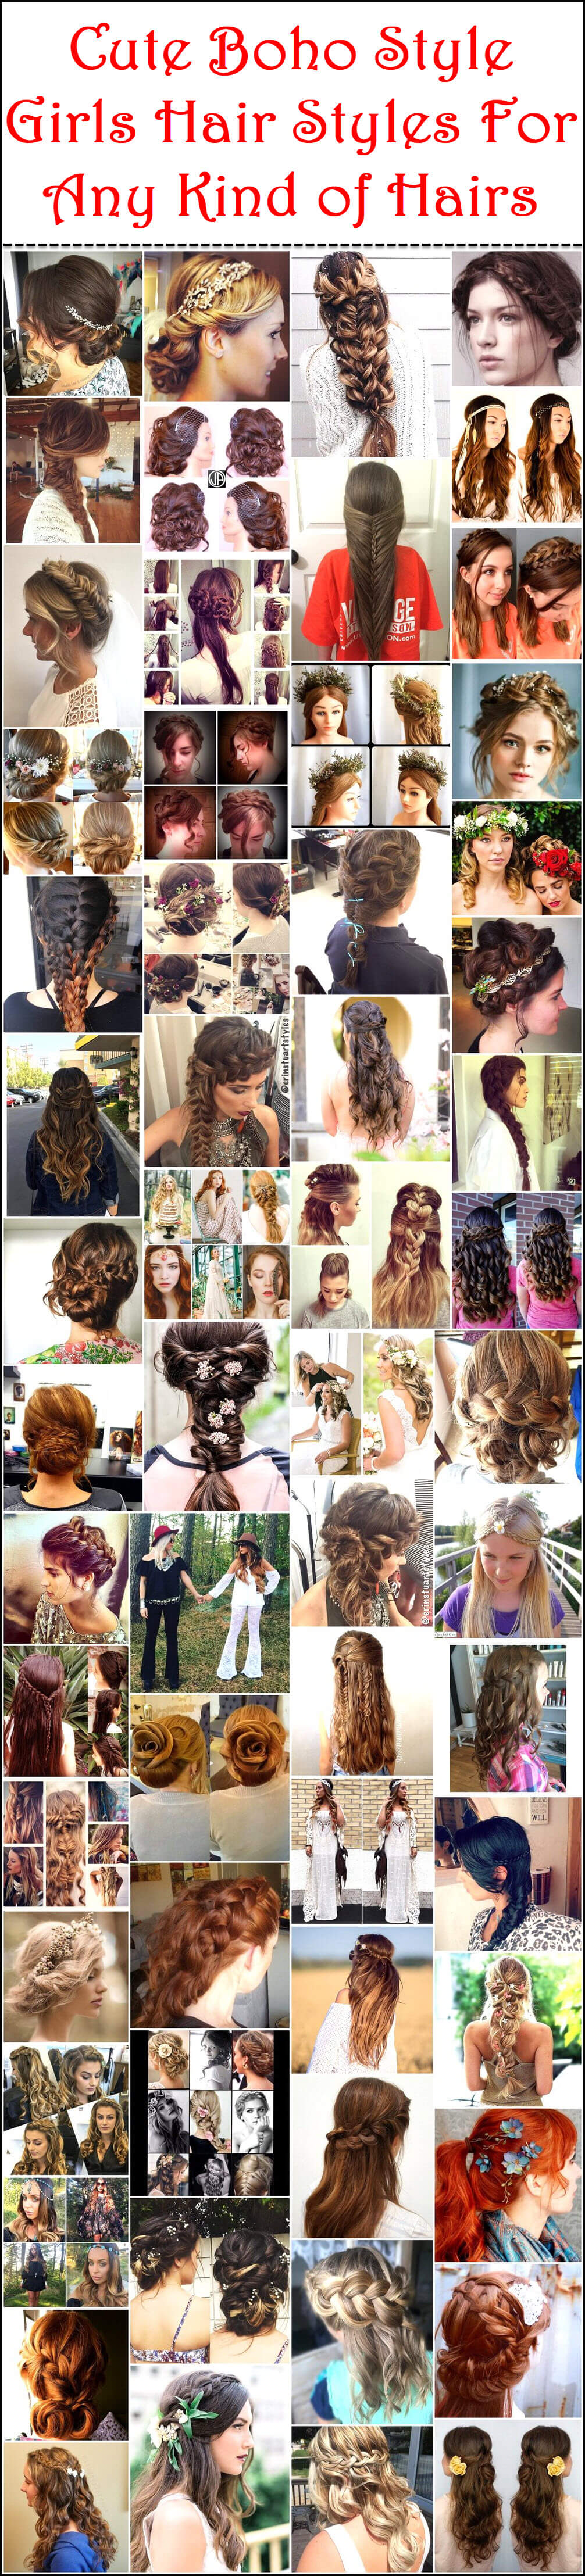 Cute Boho Style Girls Hair Styles For Any Kind of Hairs